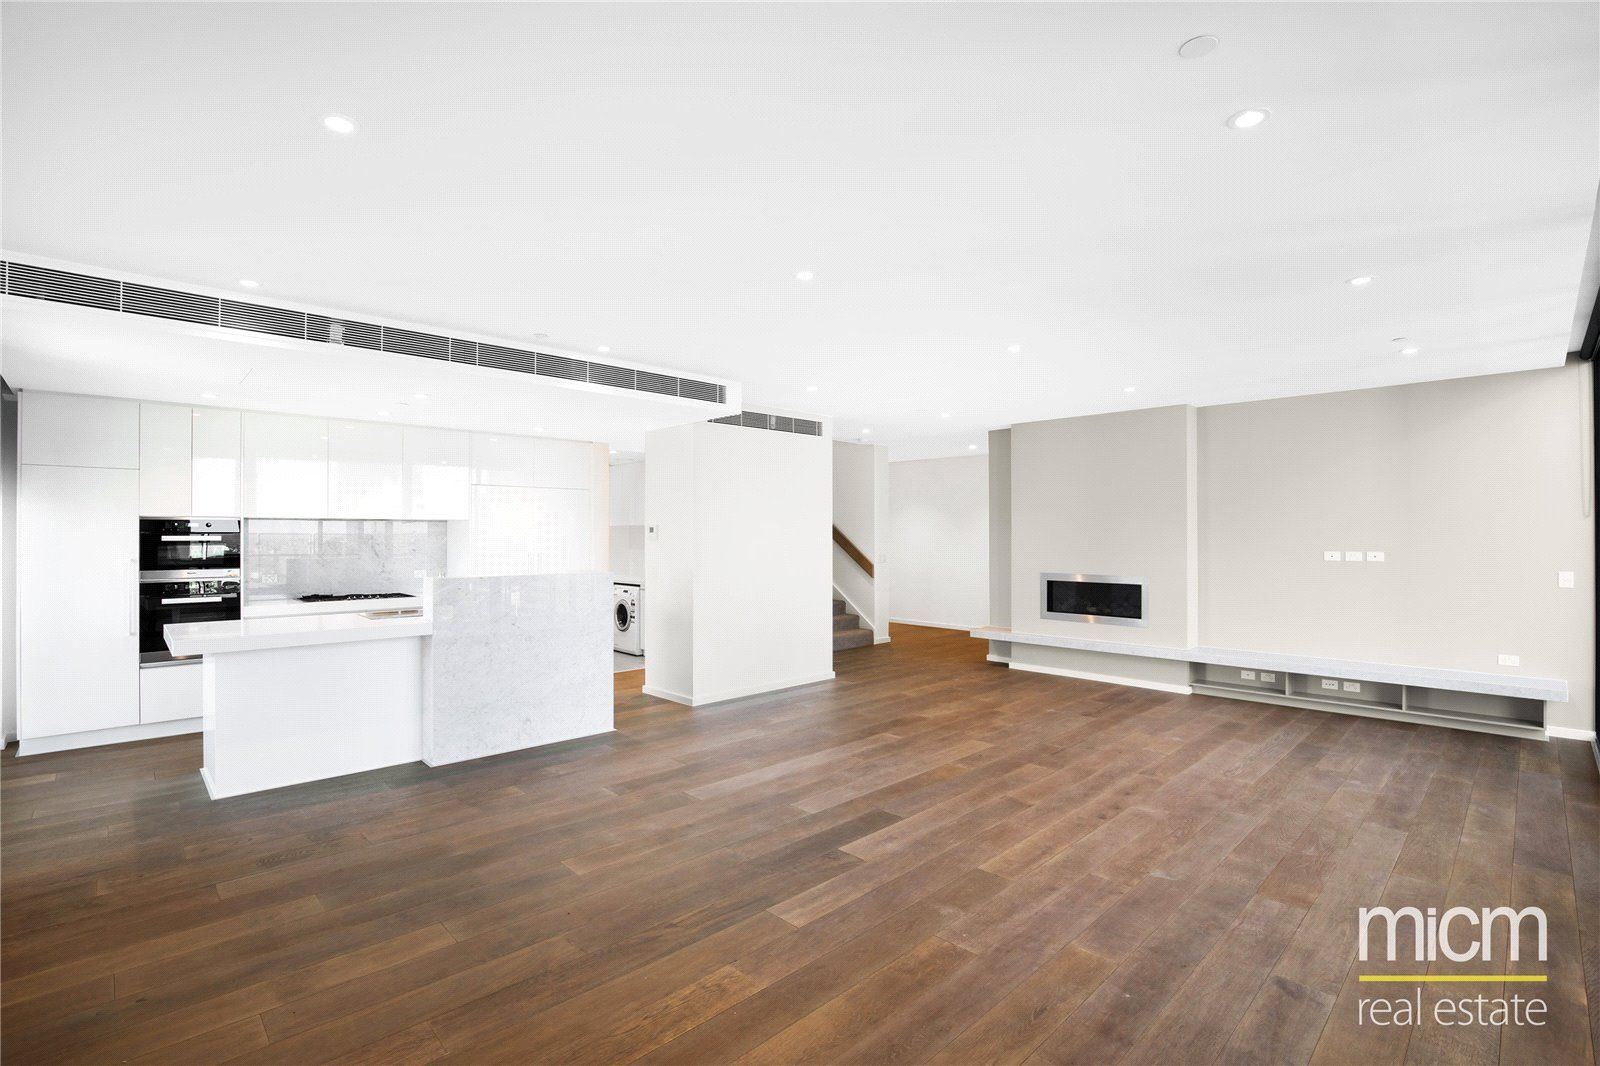 Melbourne One: 45th Floor - Remarkable Four Bedroom Penthouse with Breathtaking Views!